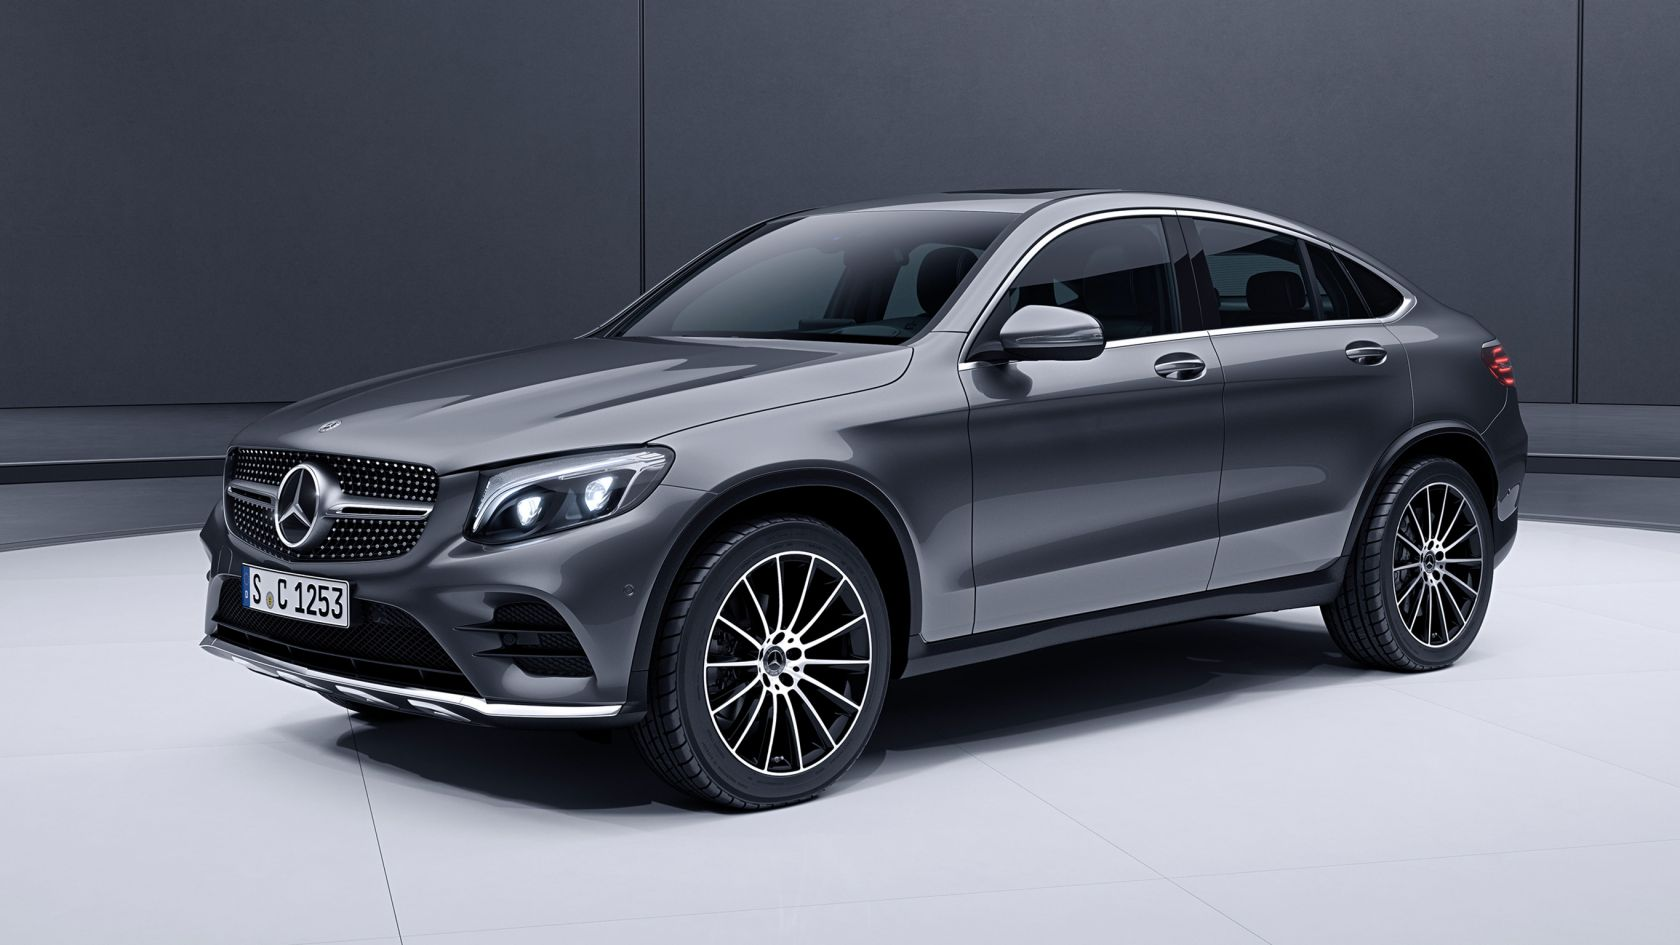 Mercedes Benz Glc Coupe Inspiracao